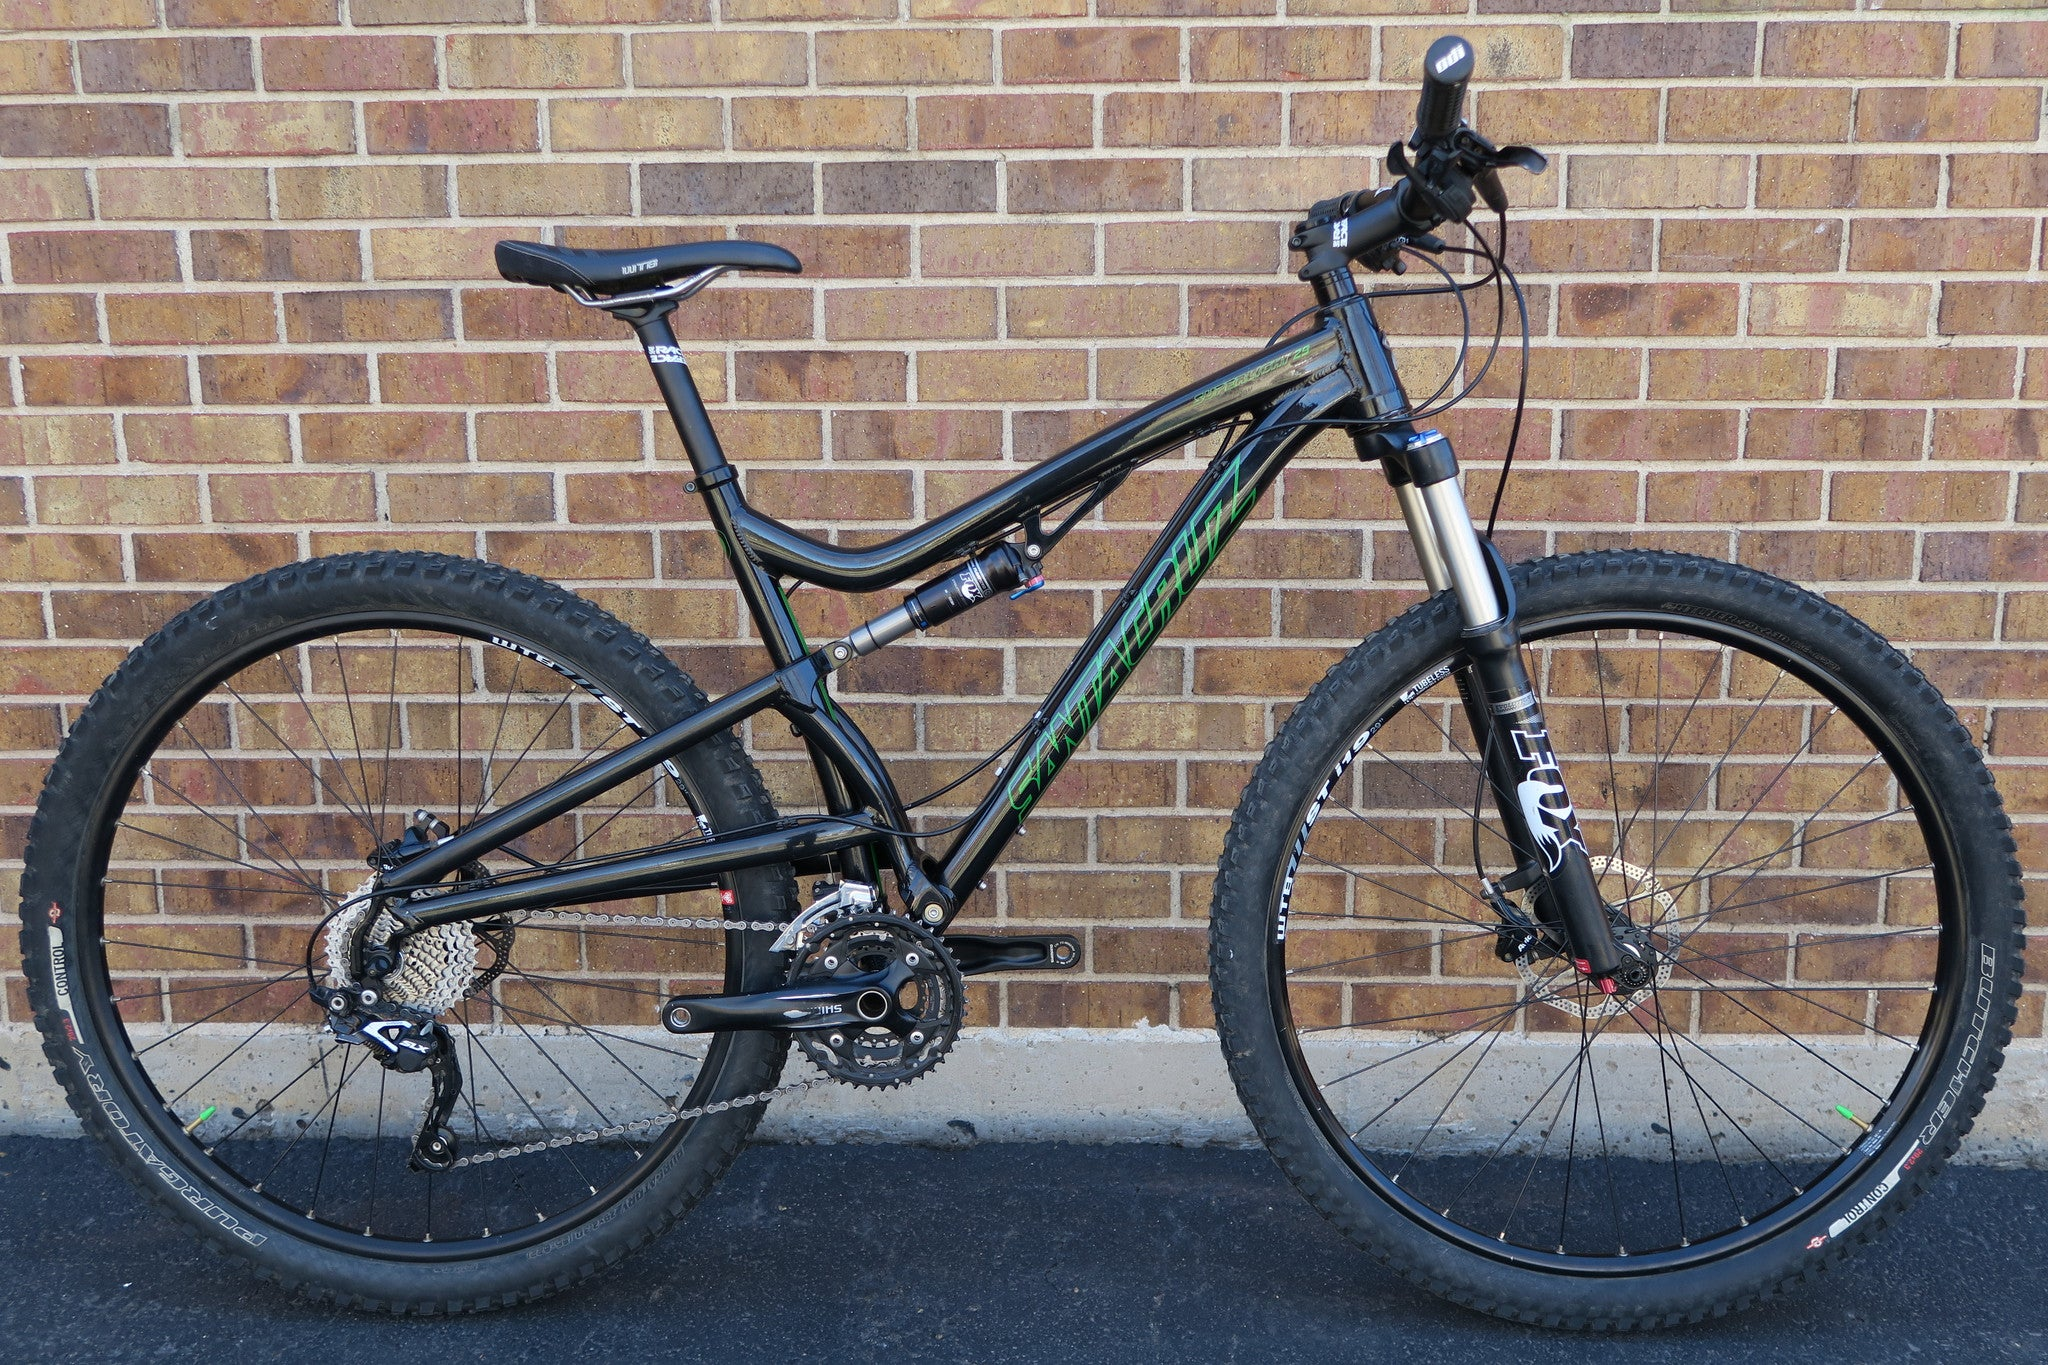 2012 SANTA CRUZ SUPERLIGHT 29